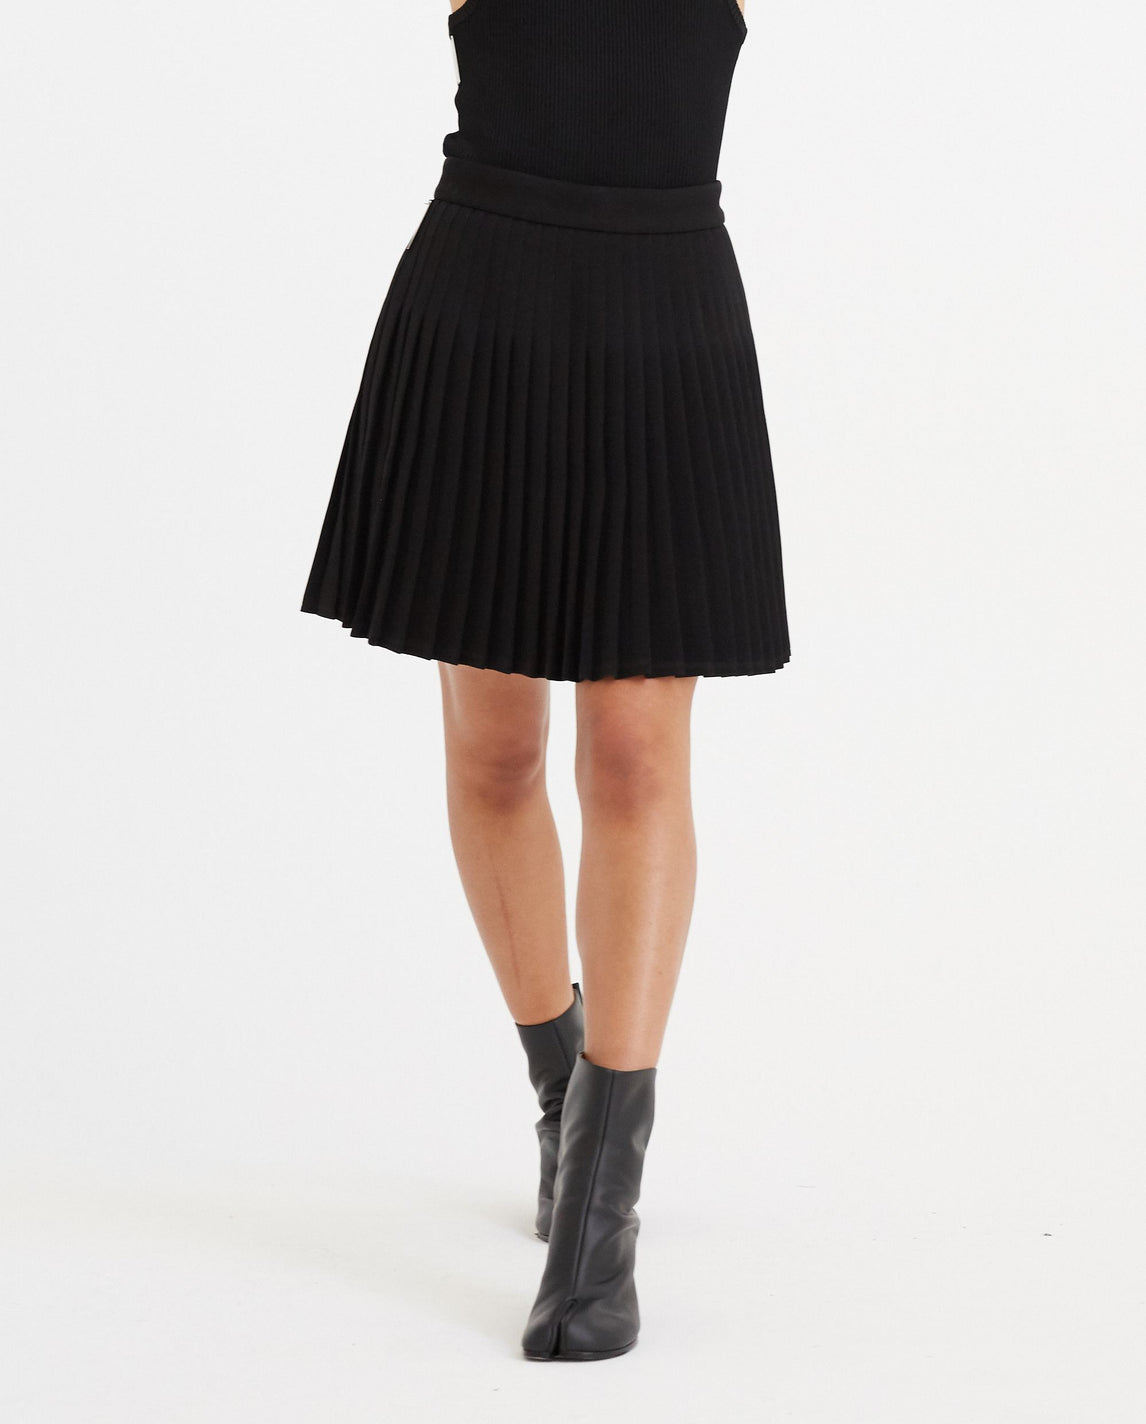 Pleated Mini Skirt - Black UNISEX PETER DO